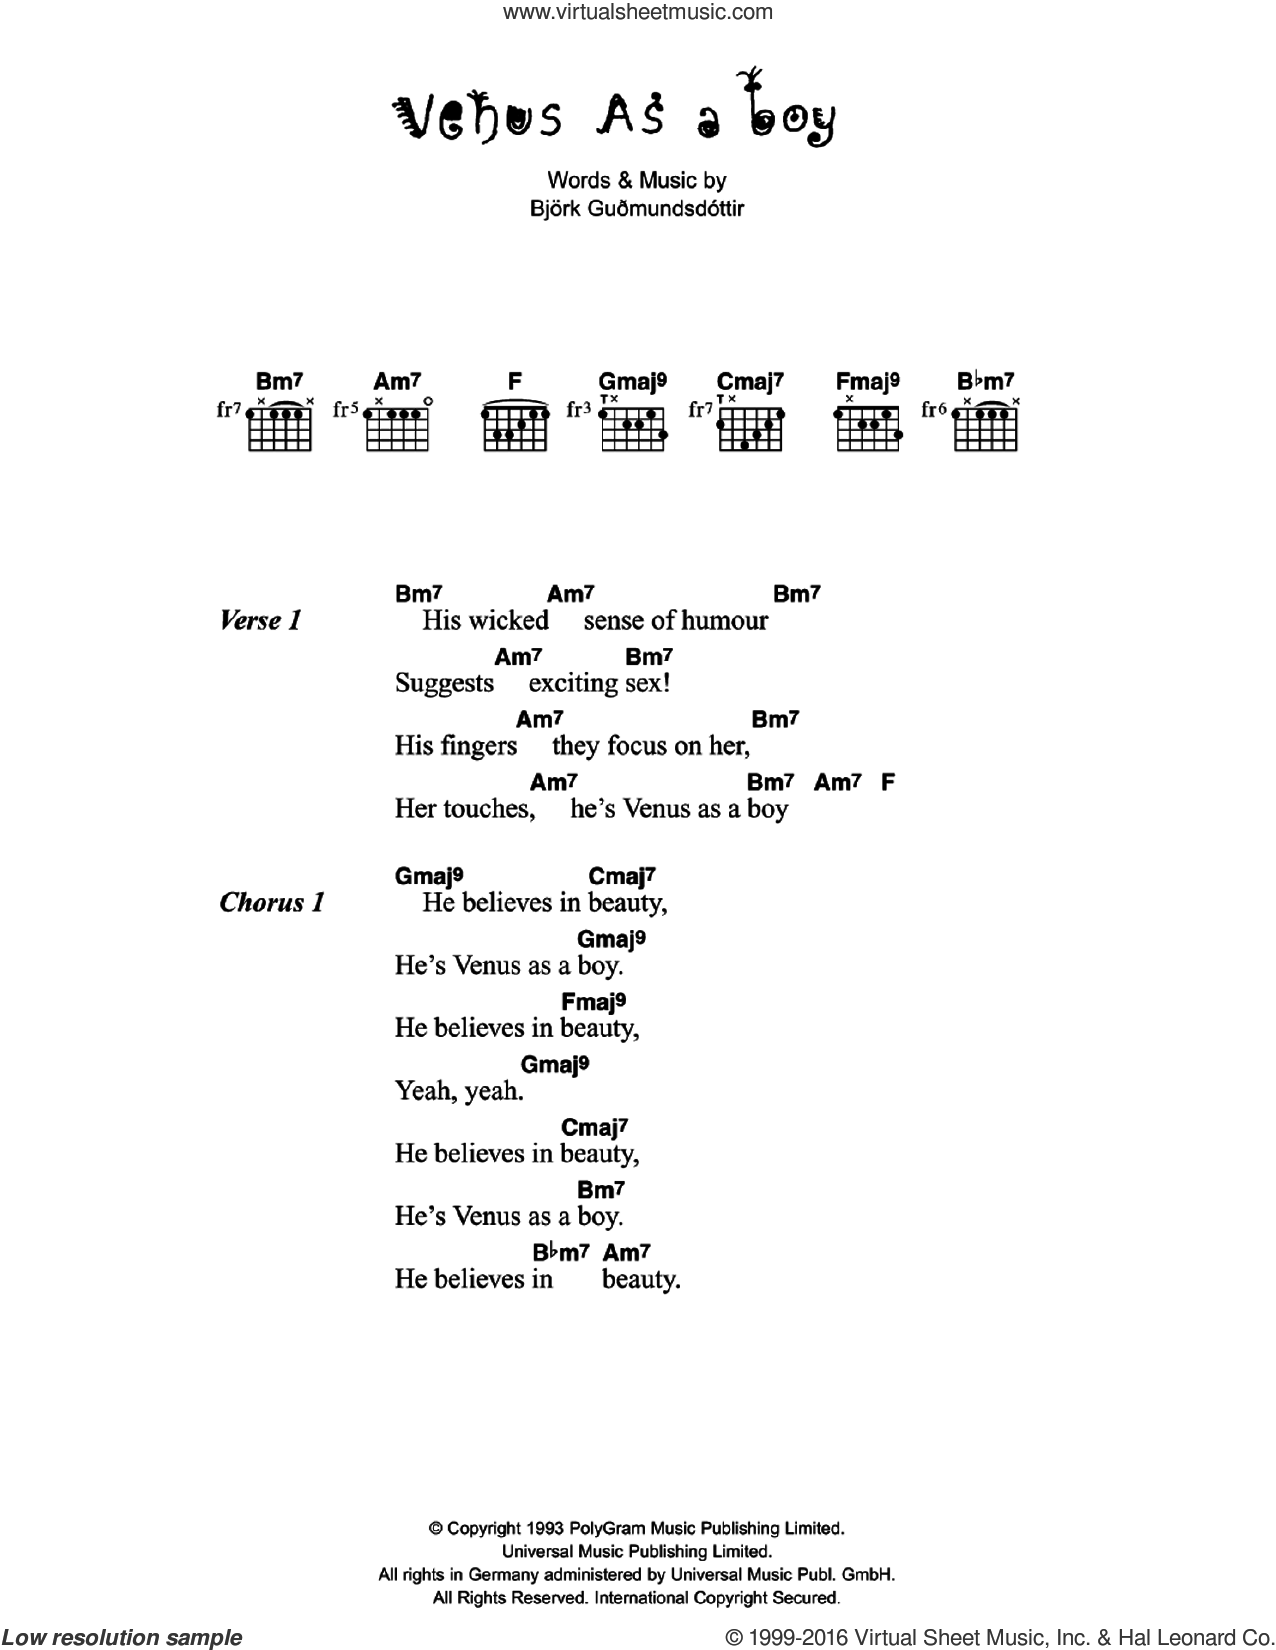 Venus As A Boy sheet music for guitar (chords) by Bjork Gudmundsdottir and Corinne Bailey Rae. Score Image Preview.